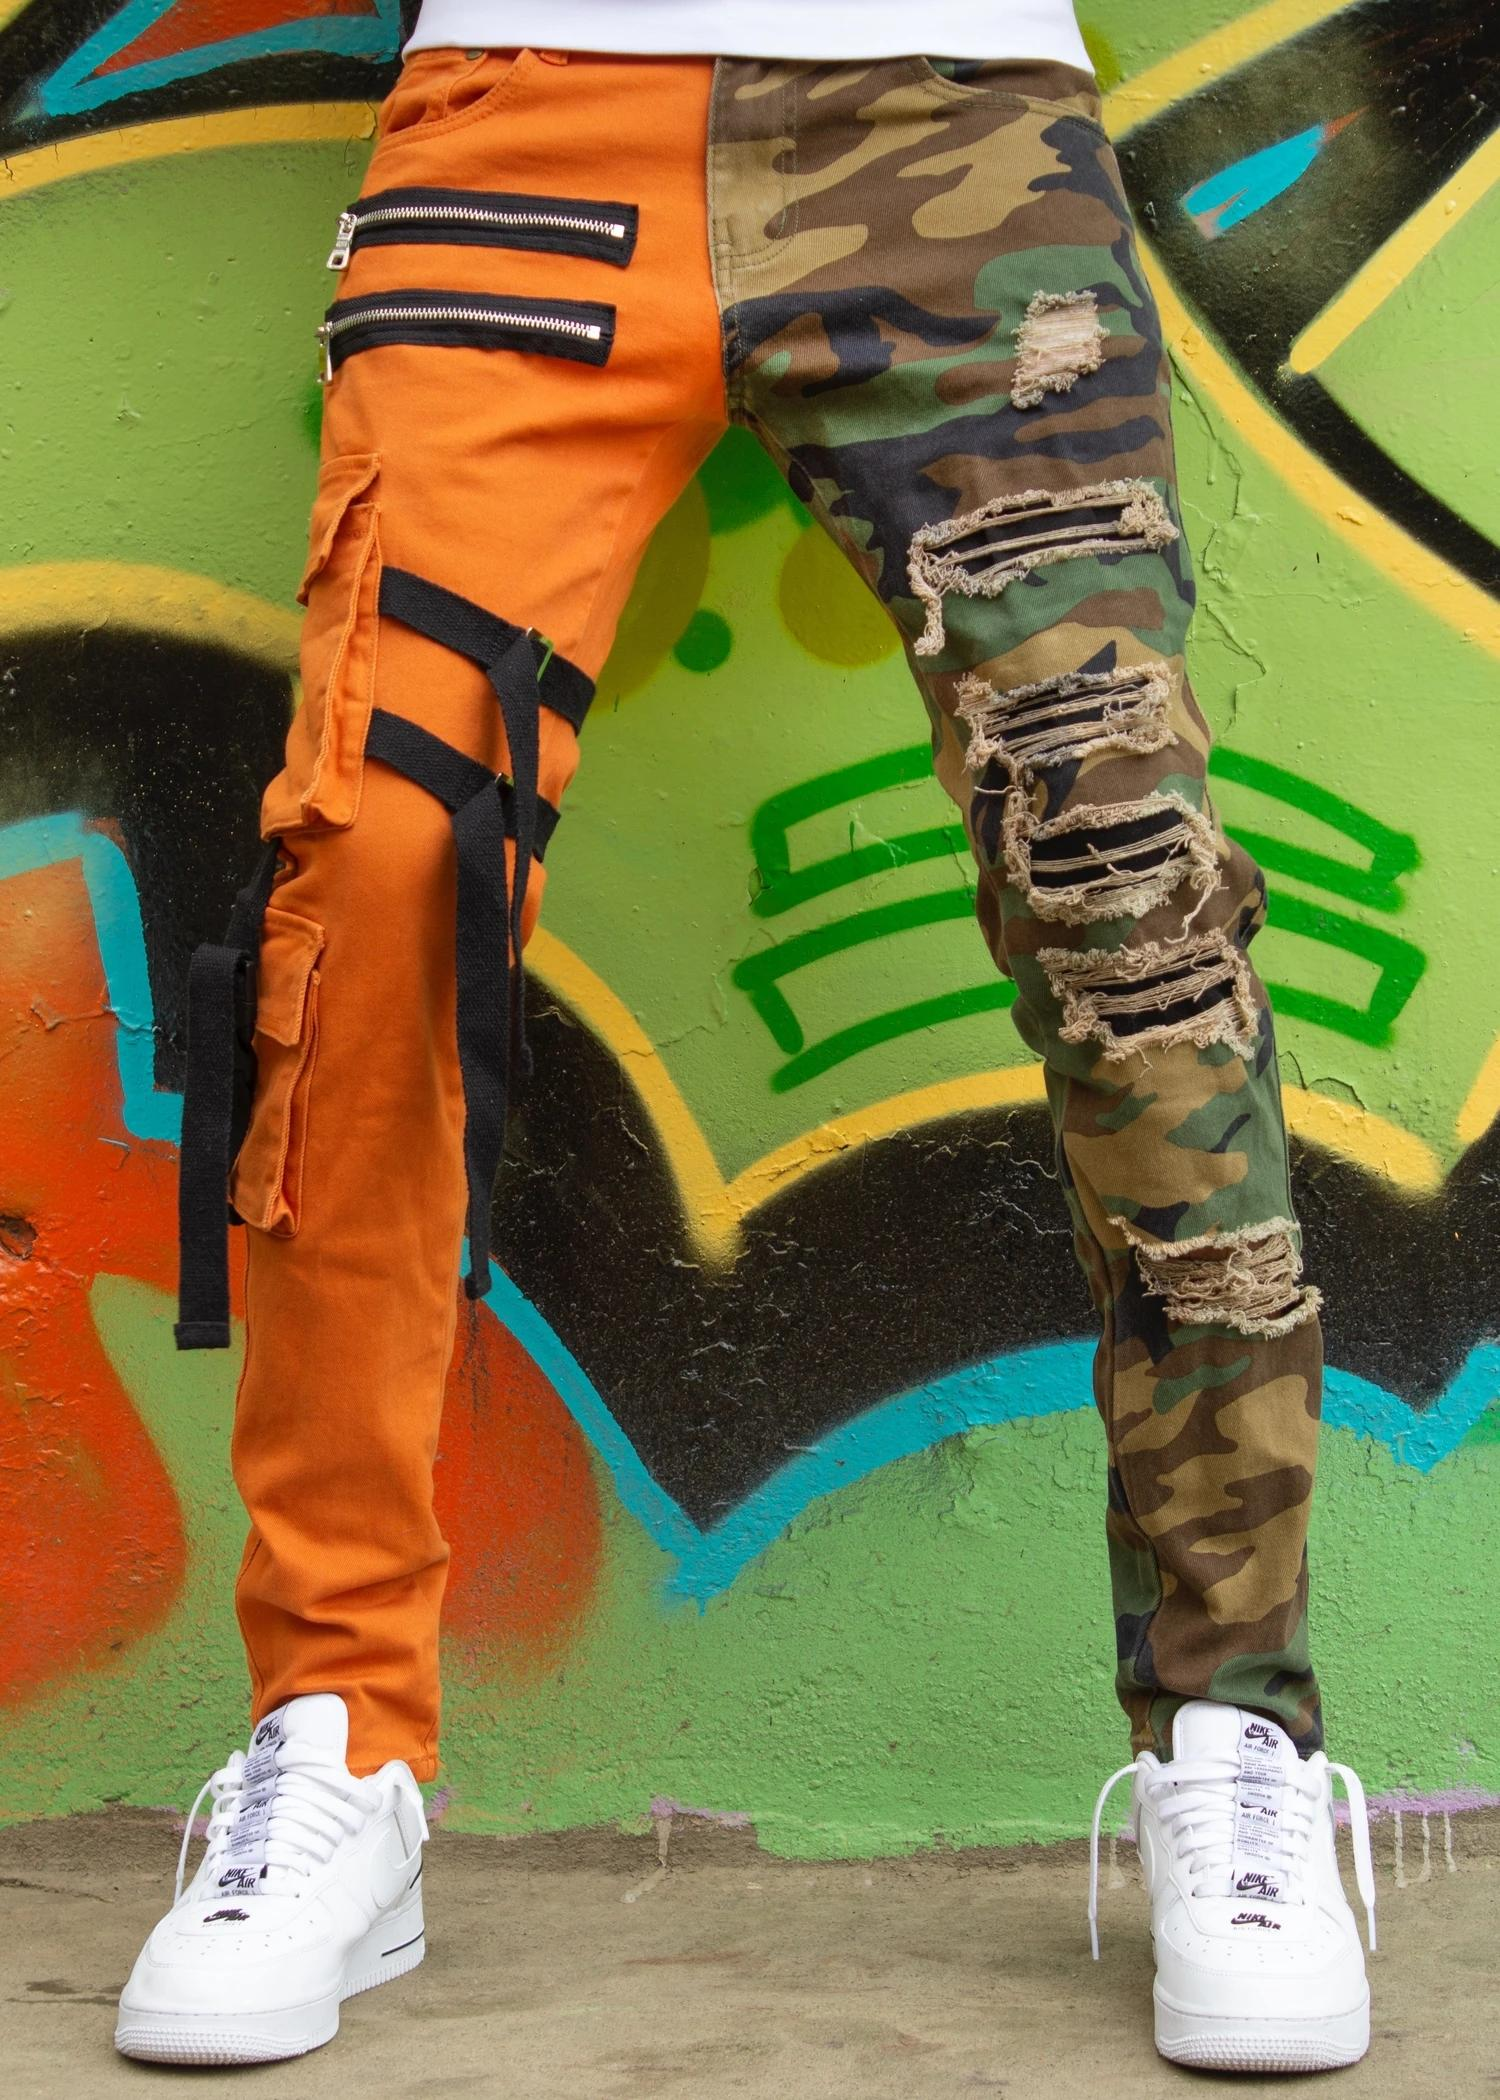 Locked and loaded jeans strap and stone camouflage and orange